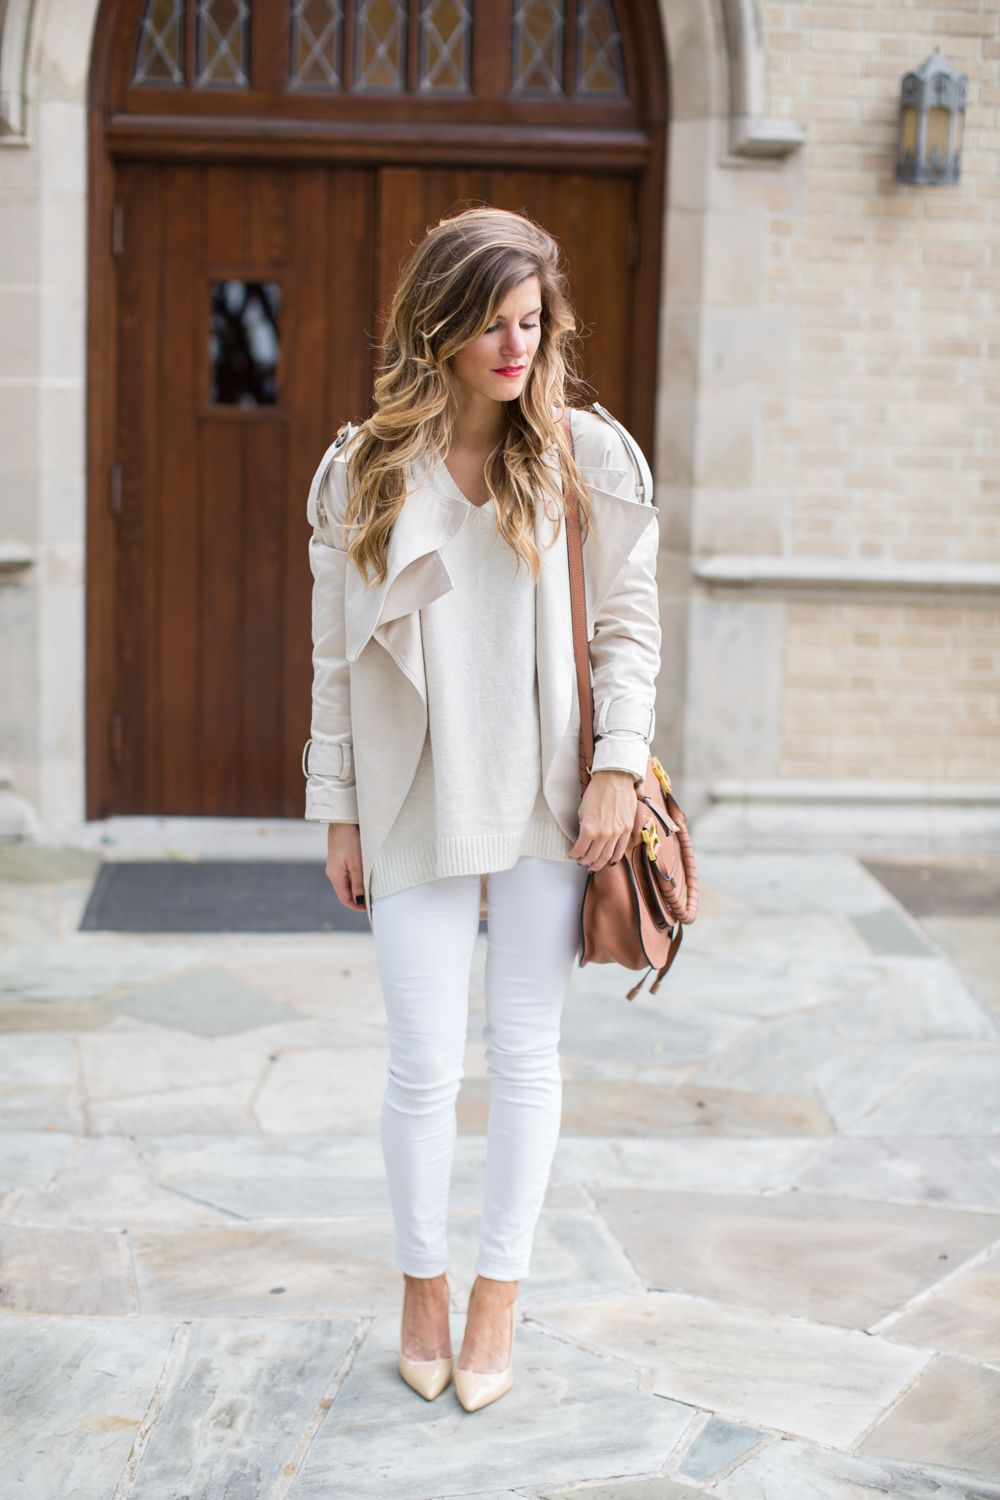 Wearing Winter White - Winter white outfit with complementary ...